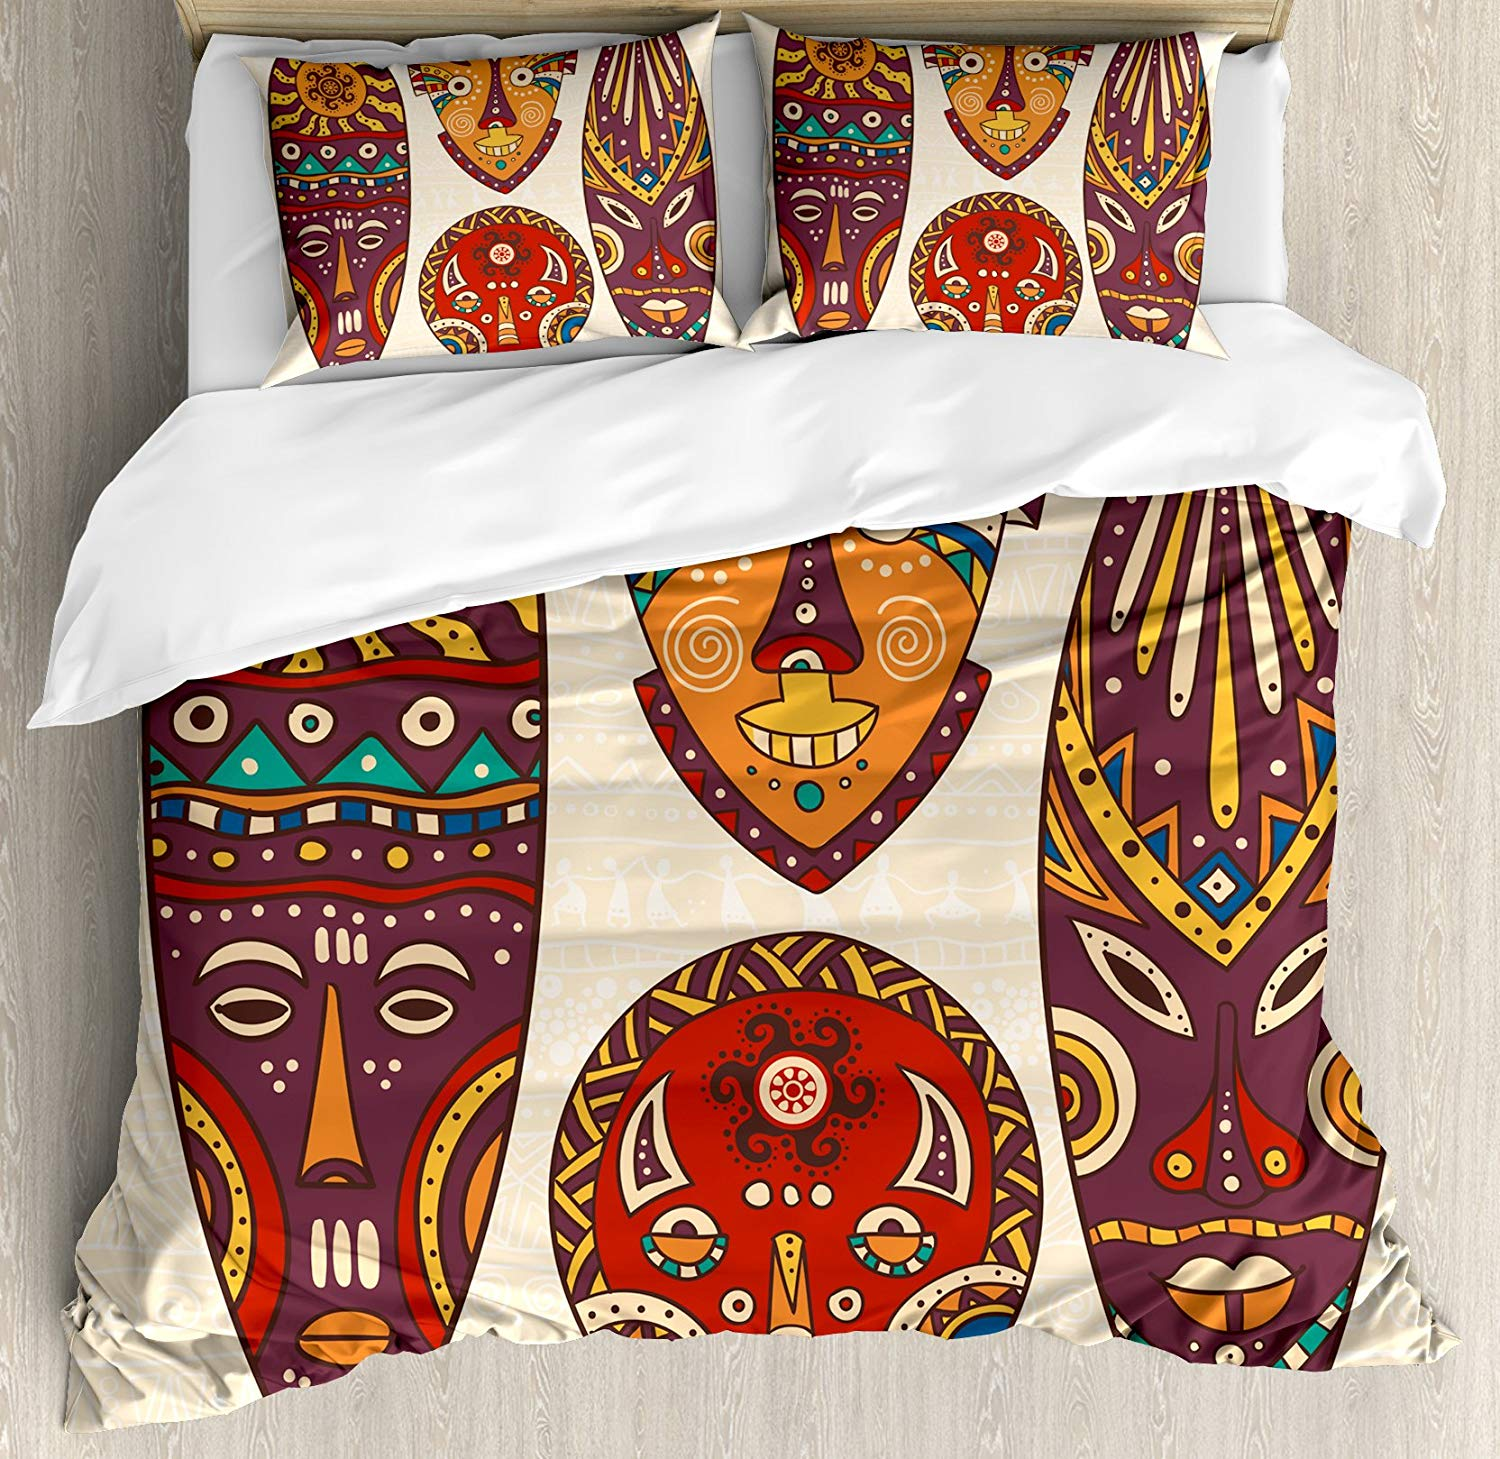 Ambesonne Tiki Bar Decor Duvet Cover Set Queen Size, Decorative Mask Designs African Aborigine Art Patterns Cultural Ethnic Print, Decorative 3 Piece Bedding Set with 2 Pillow Shams, Multicolor - Ufumbuzi - Home